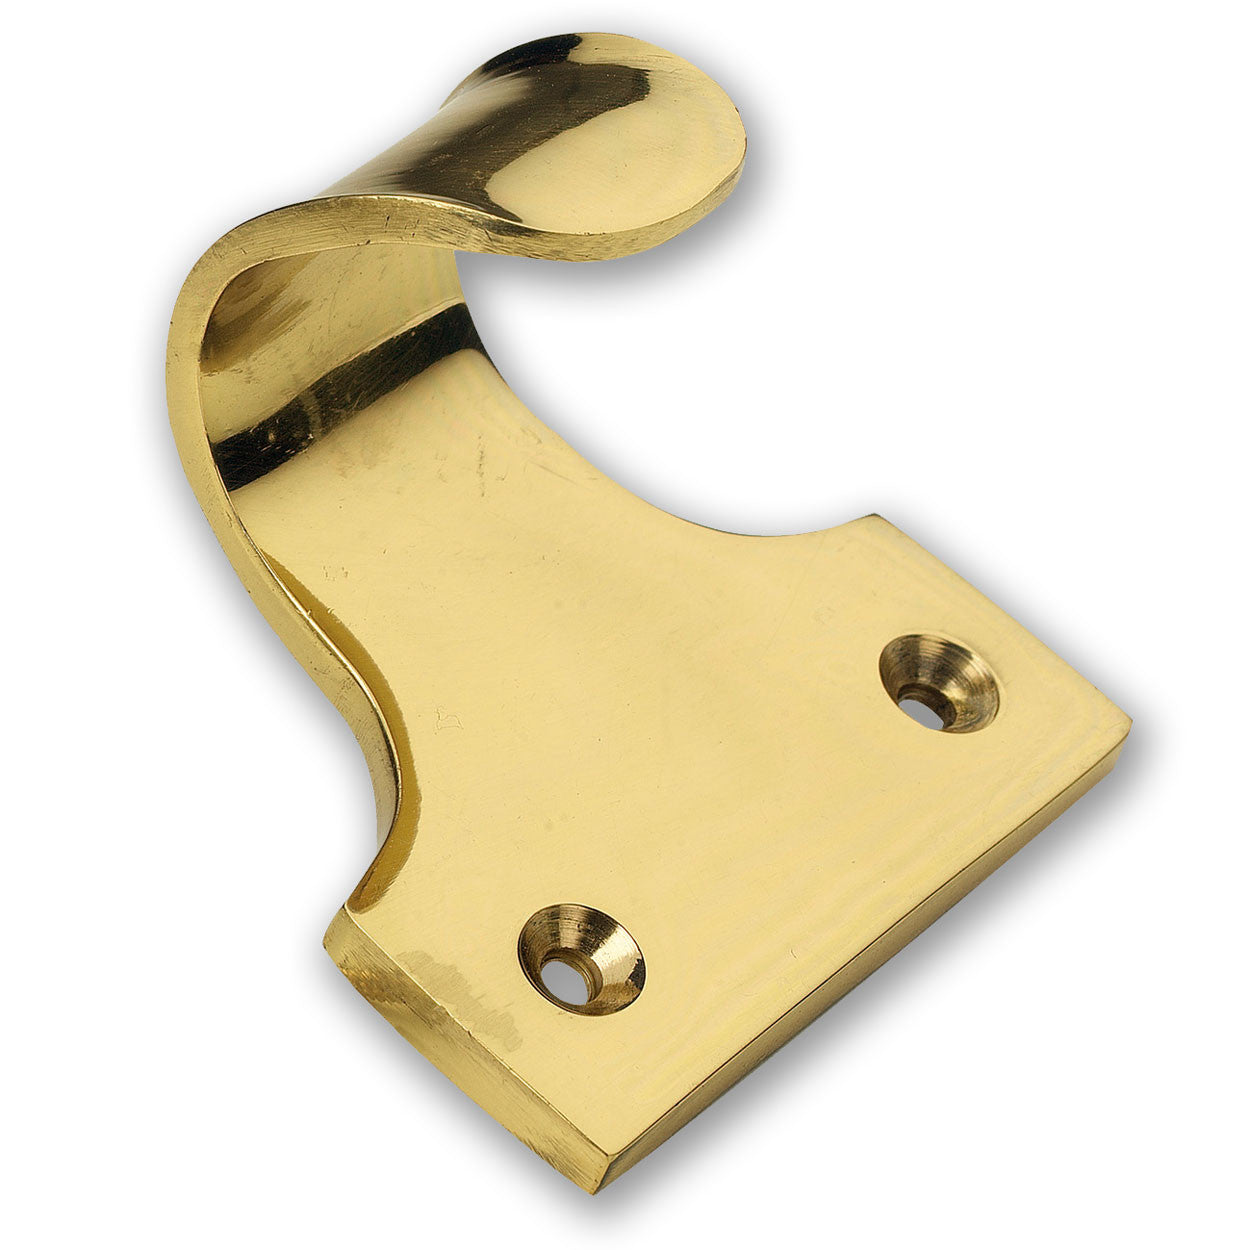 Solid Brass Sash Window Hook Lifts (Pack of 1) - RKL Tools & Hardware